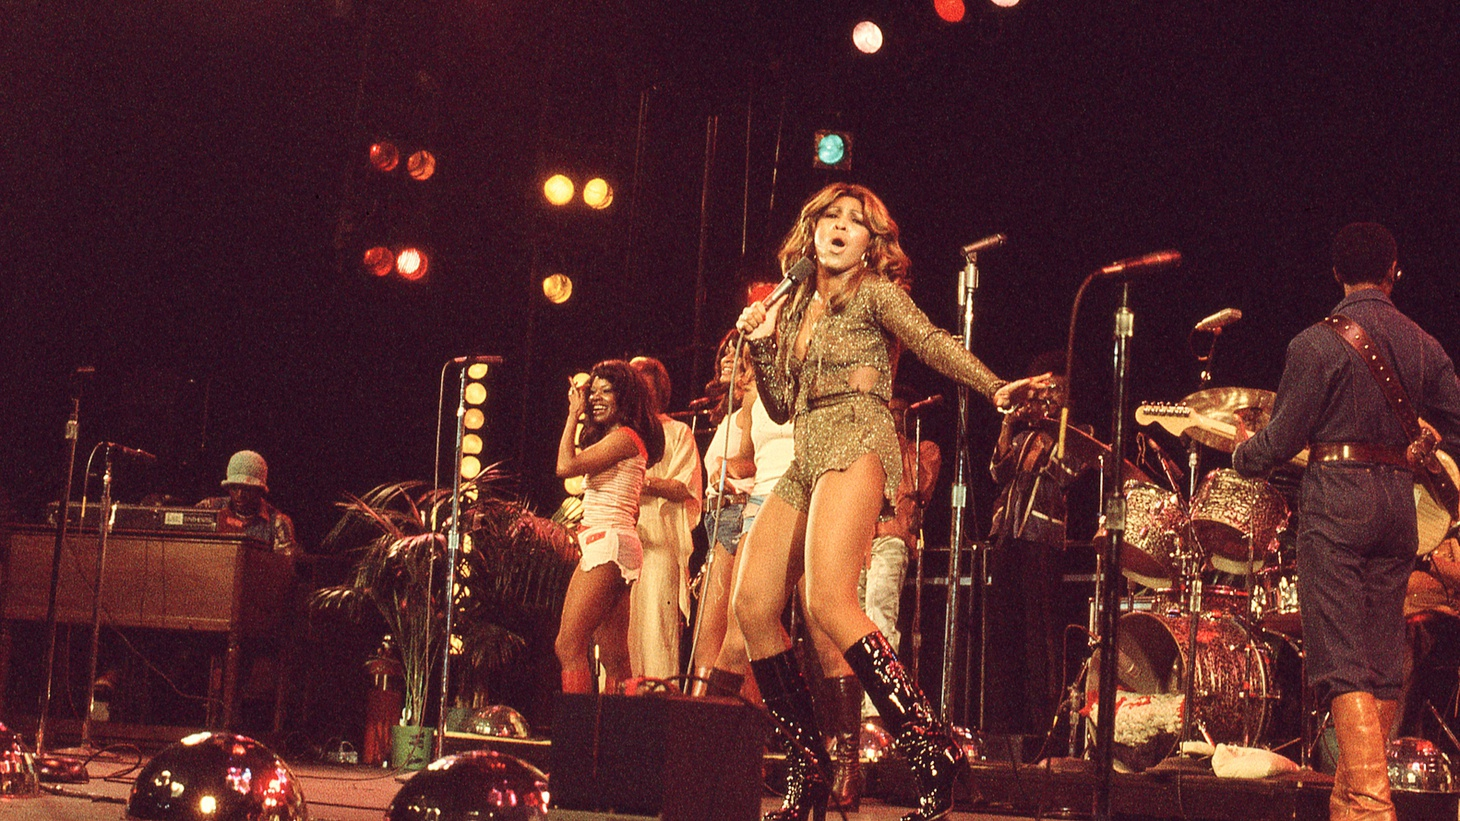 Tina Turner and Ikettes performing, January 1976.